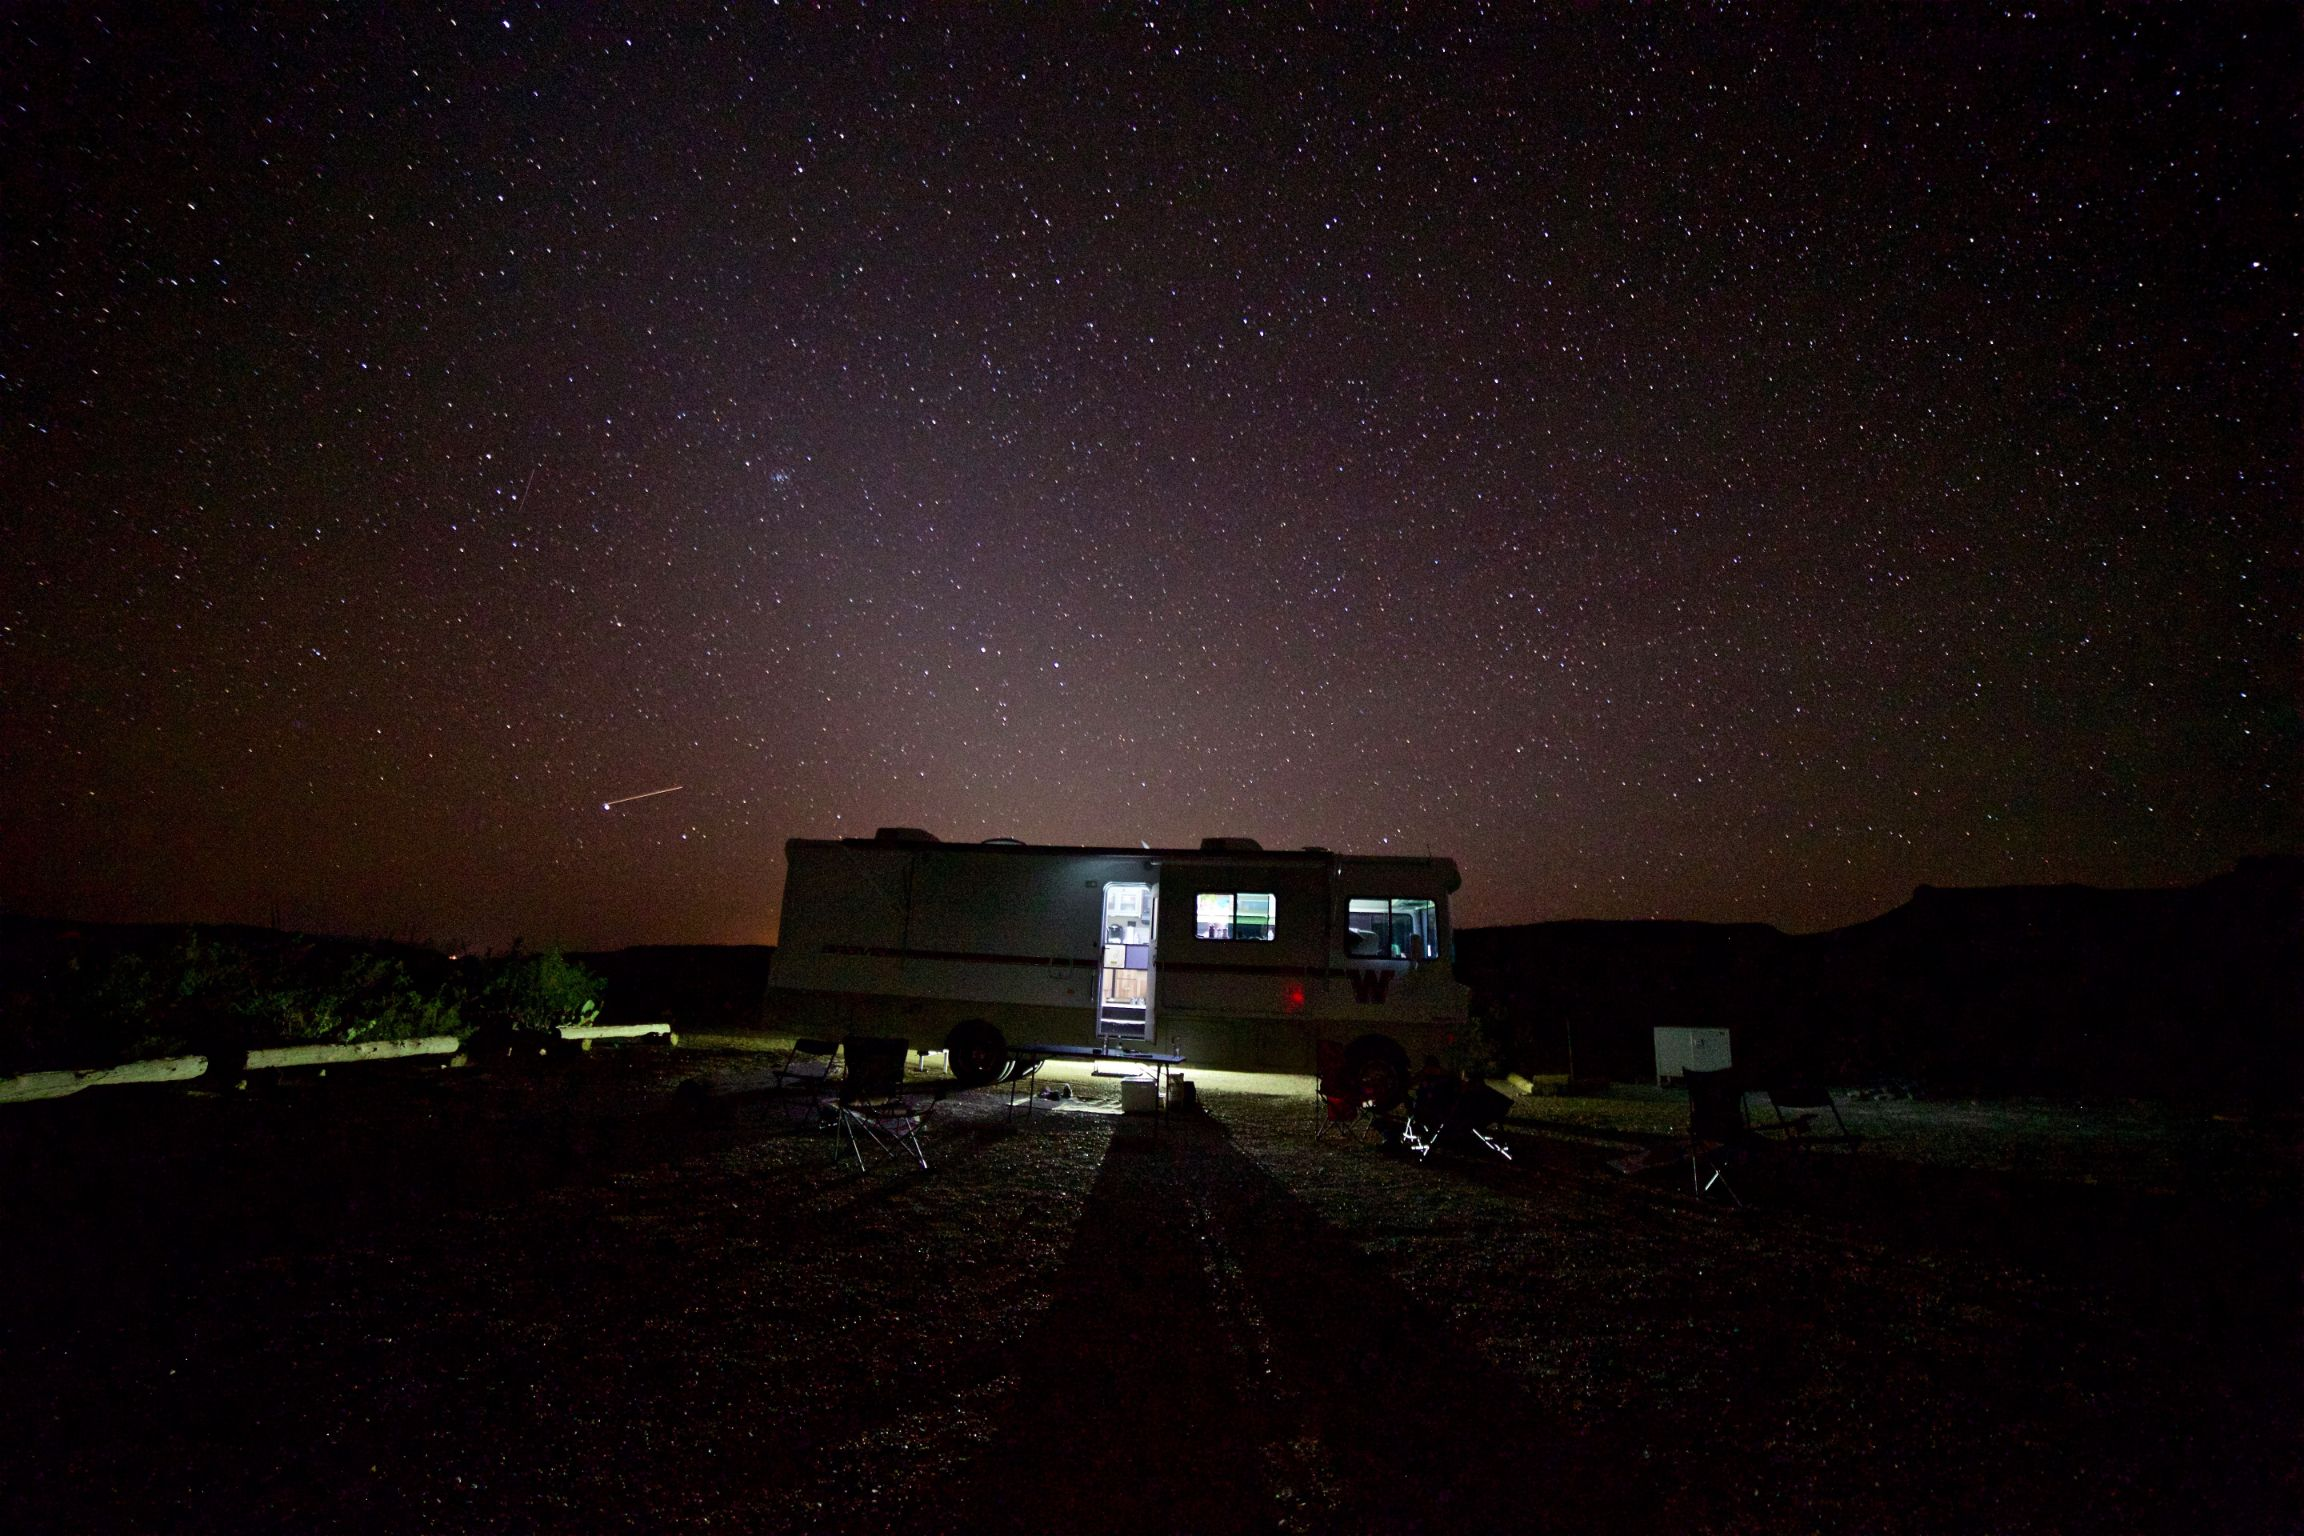 Winnebago Brave parked in the desert with a star filled night sky above.